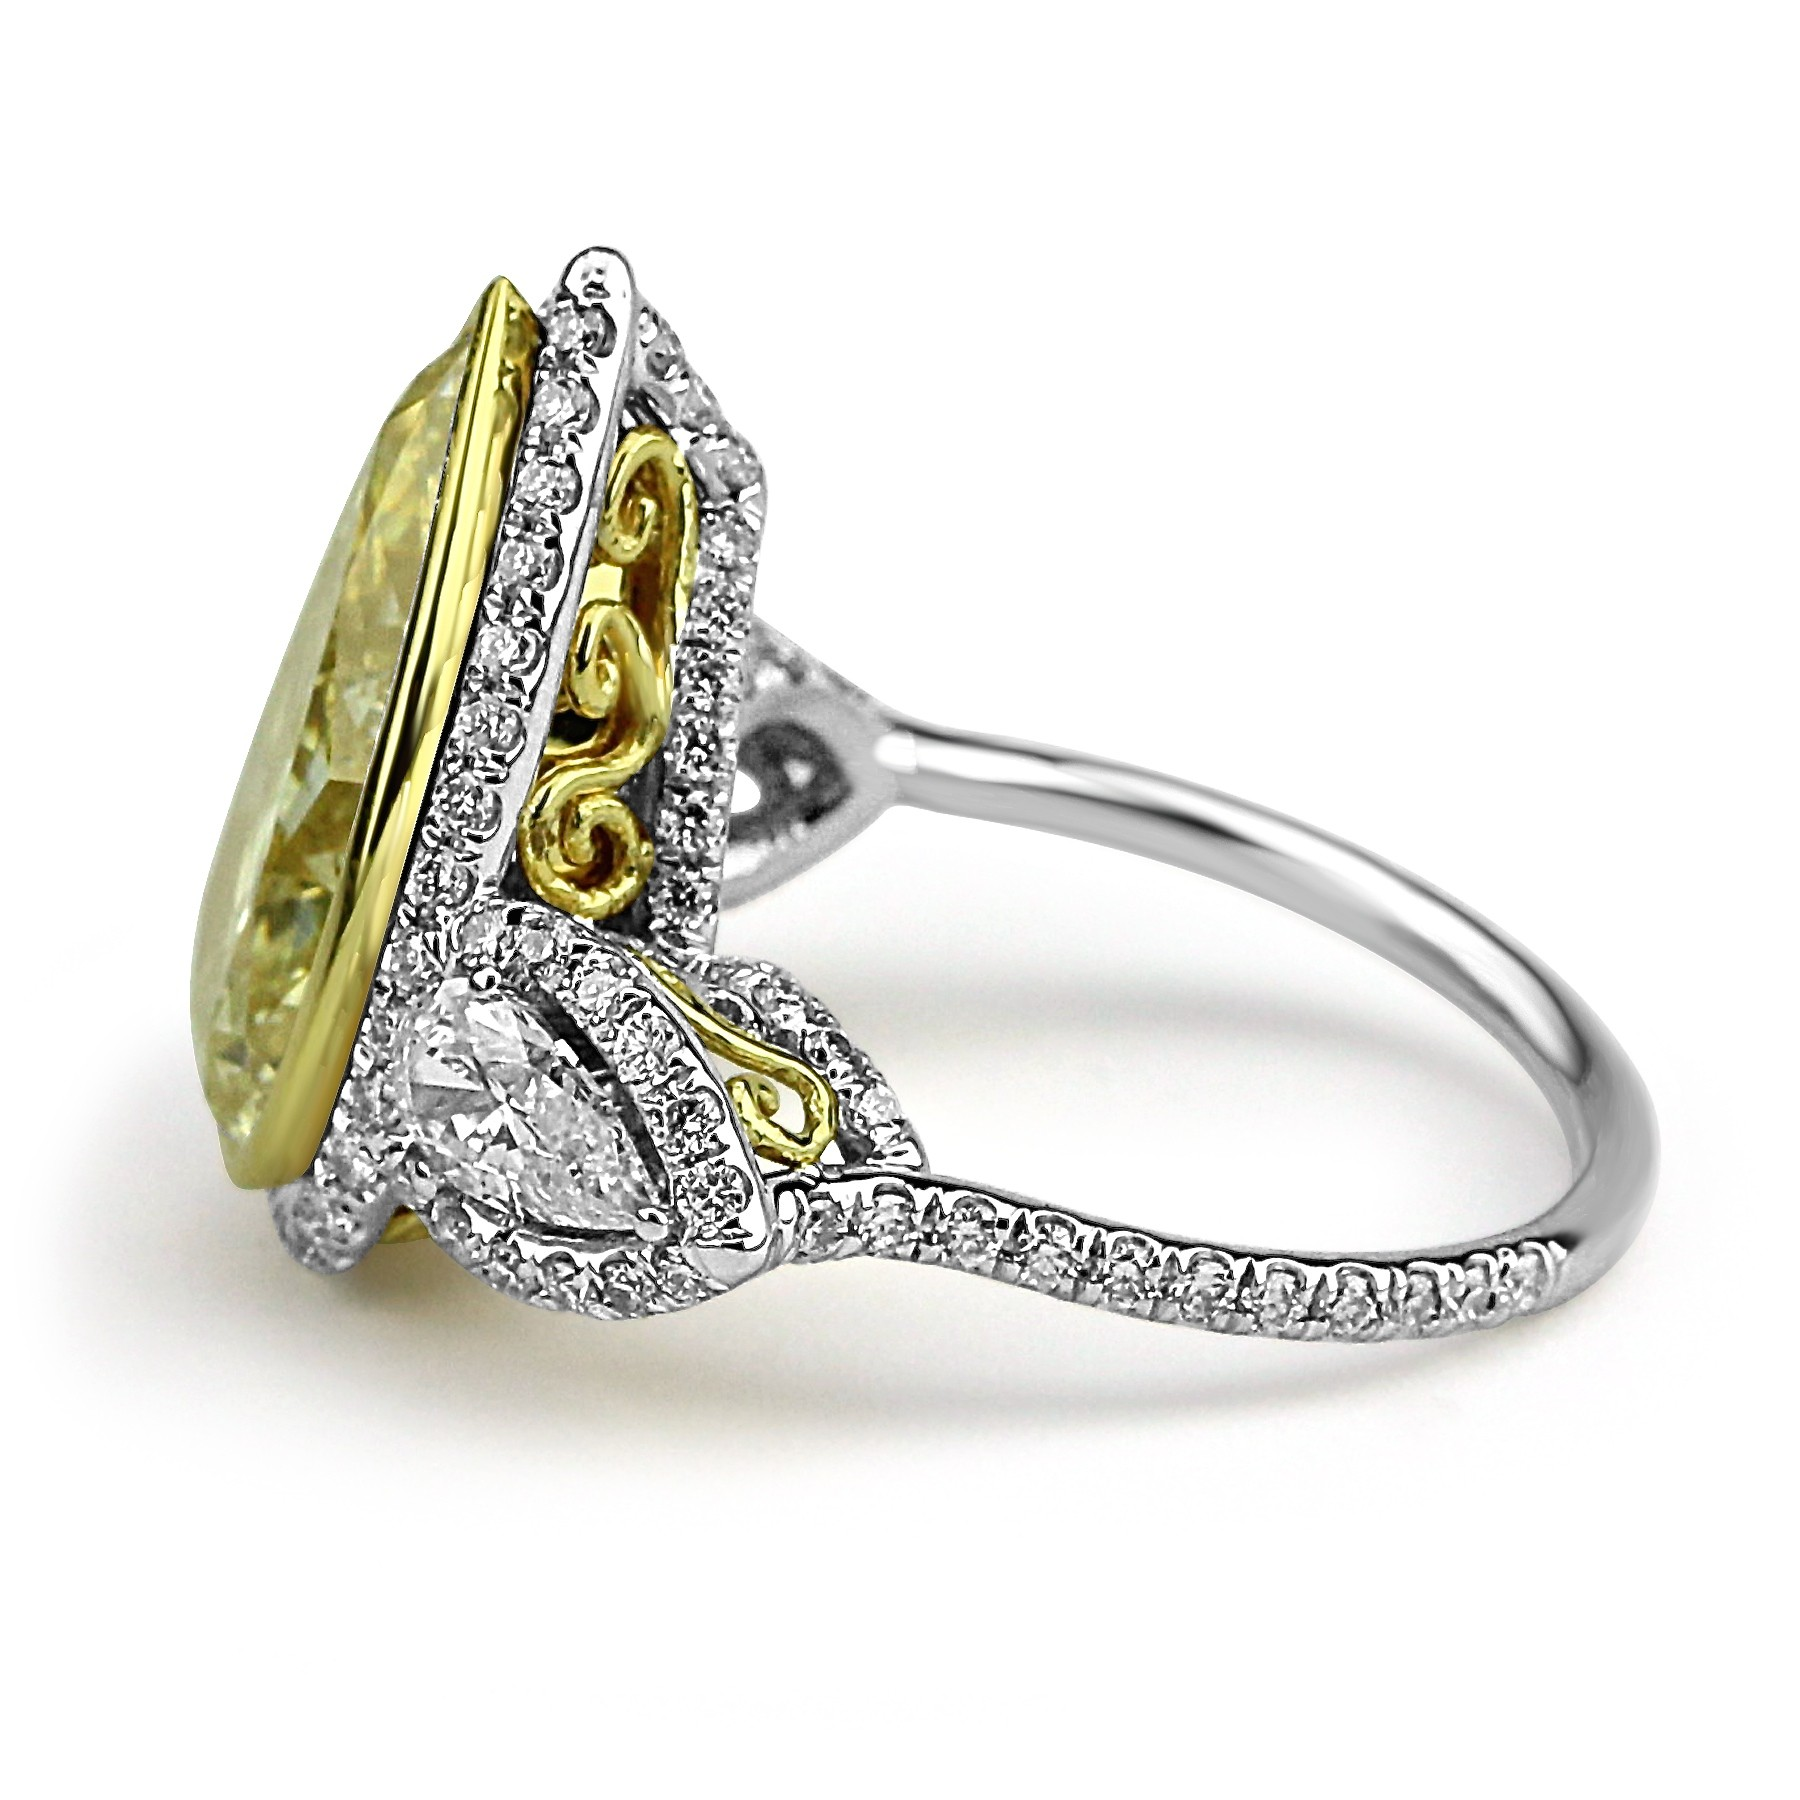 G Pearcut Fancy Yellow Diamond Engagement Ring